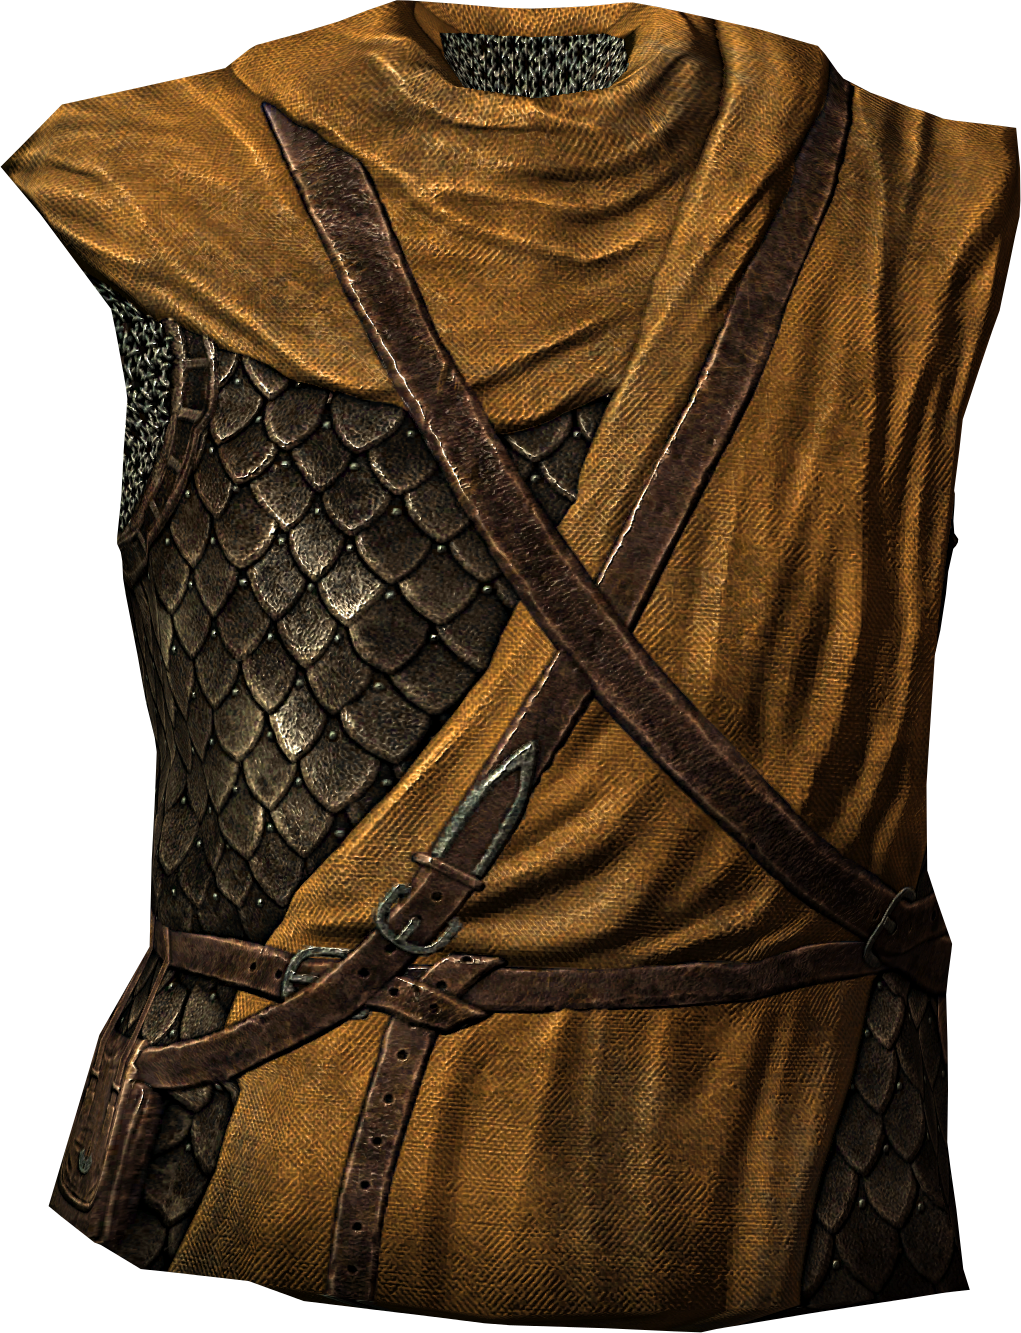 Hold Guard Armor Skyrim Pinterest Cosplay Origami Instructions Dragon Holy Shit Hard List Of This One In Particular Is The Whiterun